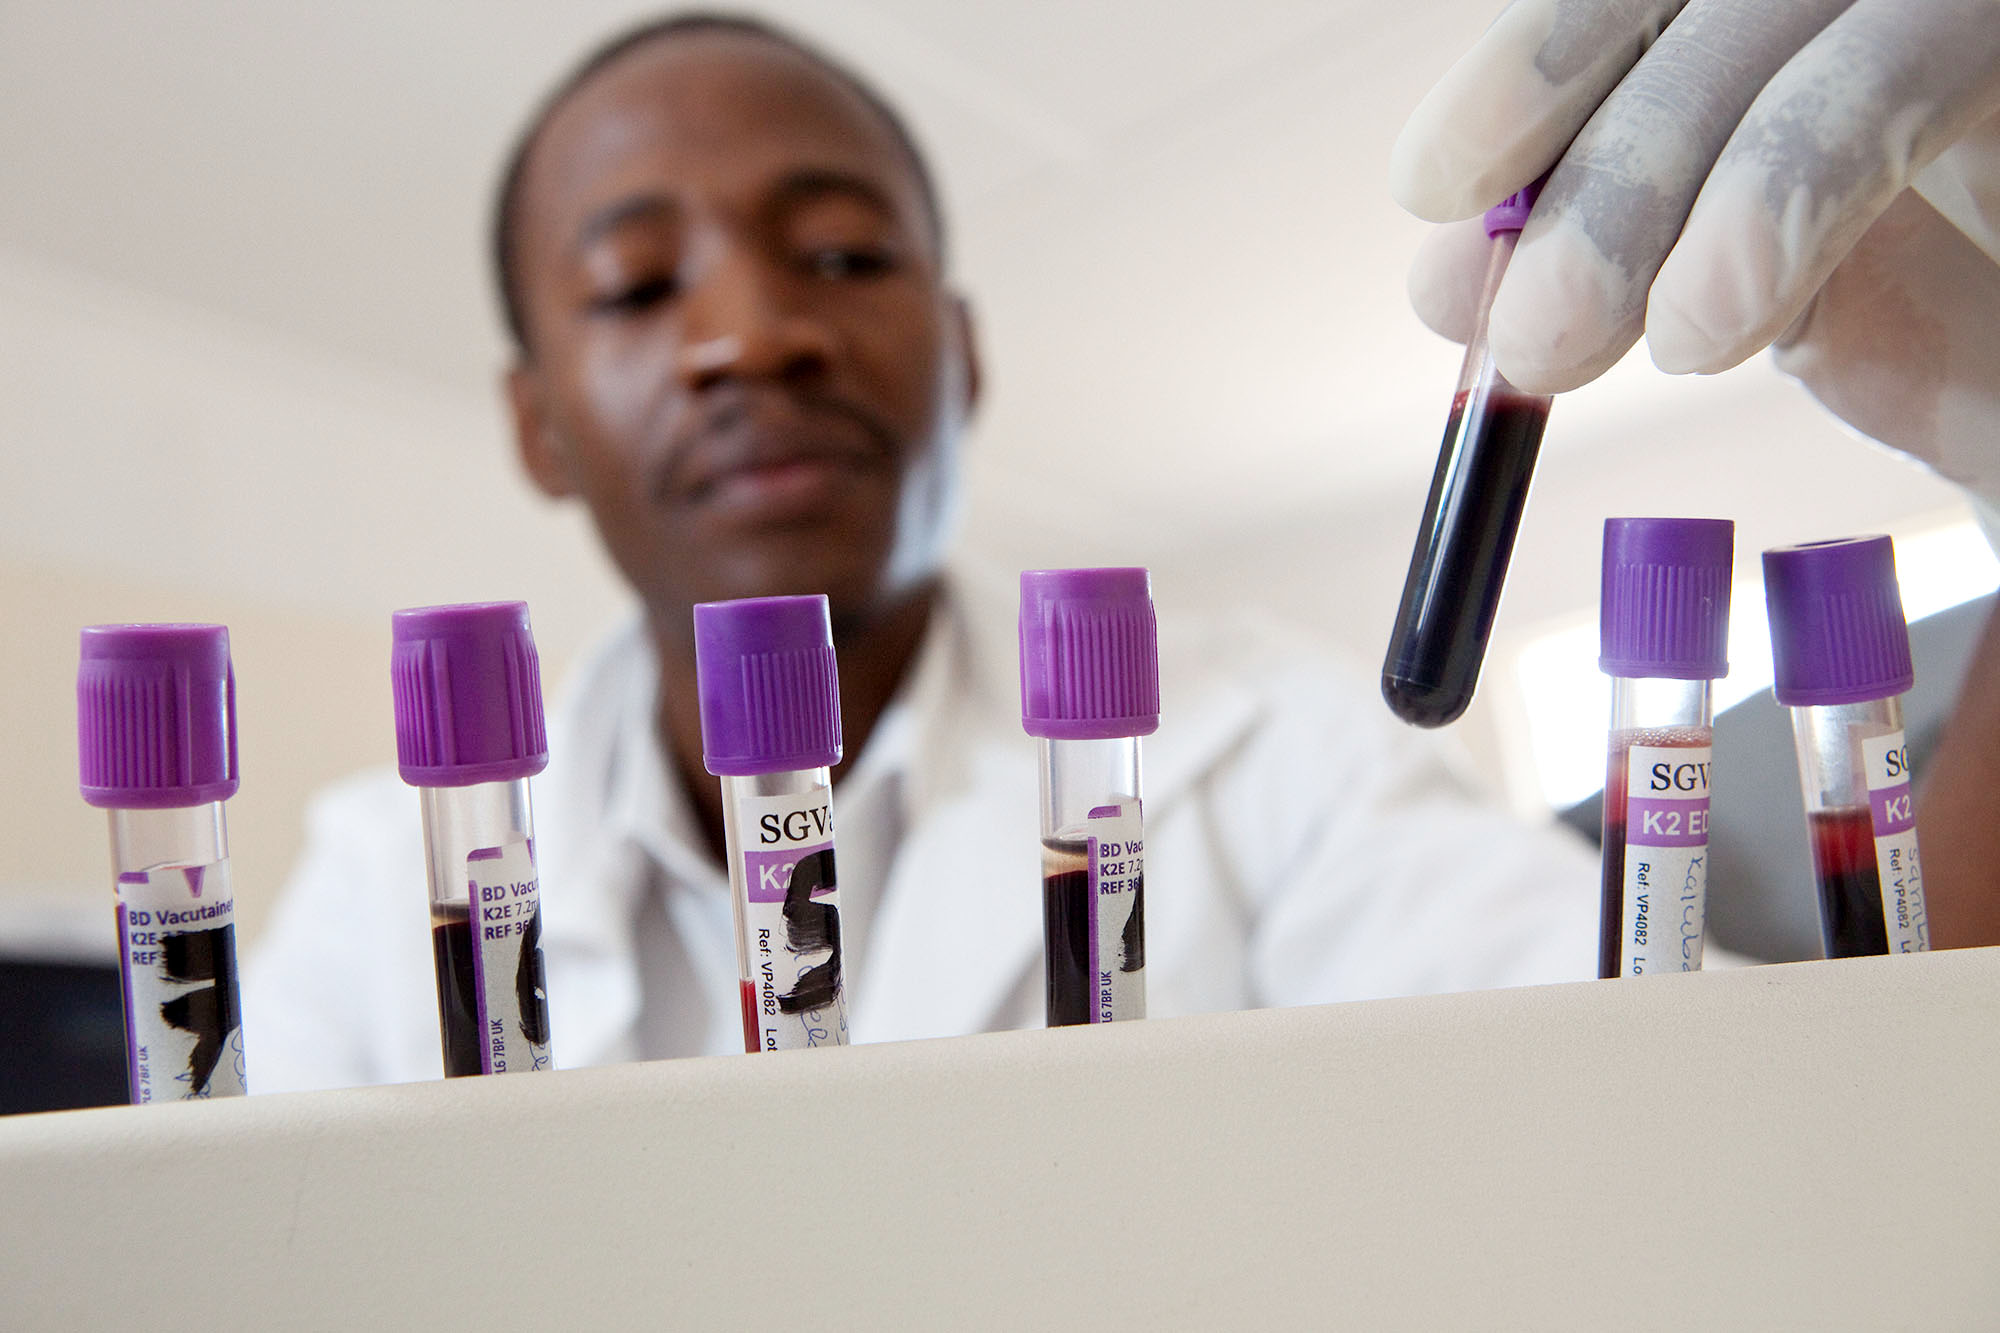 A Laboratory technician test blood samples of HIV patients at a hospital in Luanshya, Zambia.